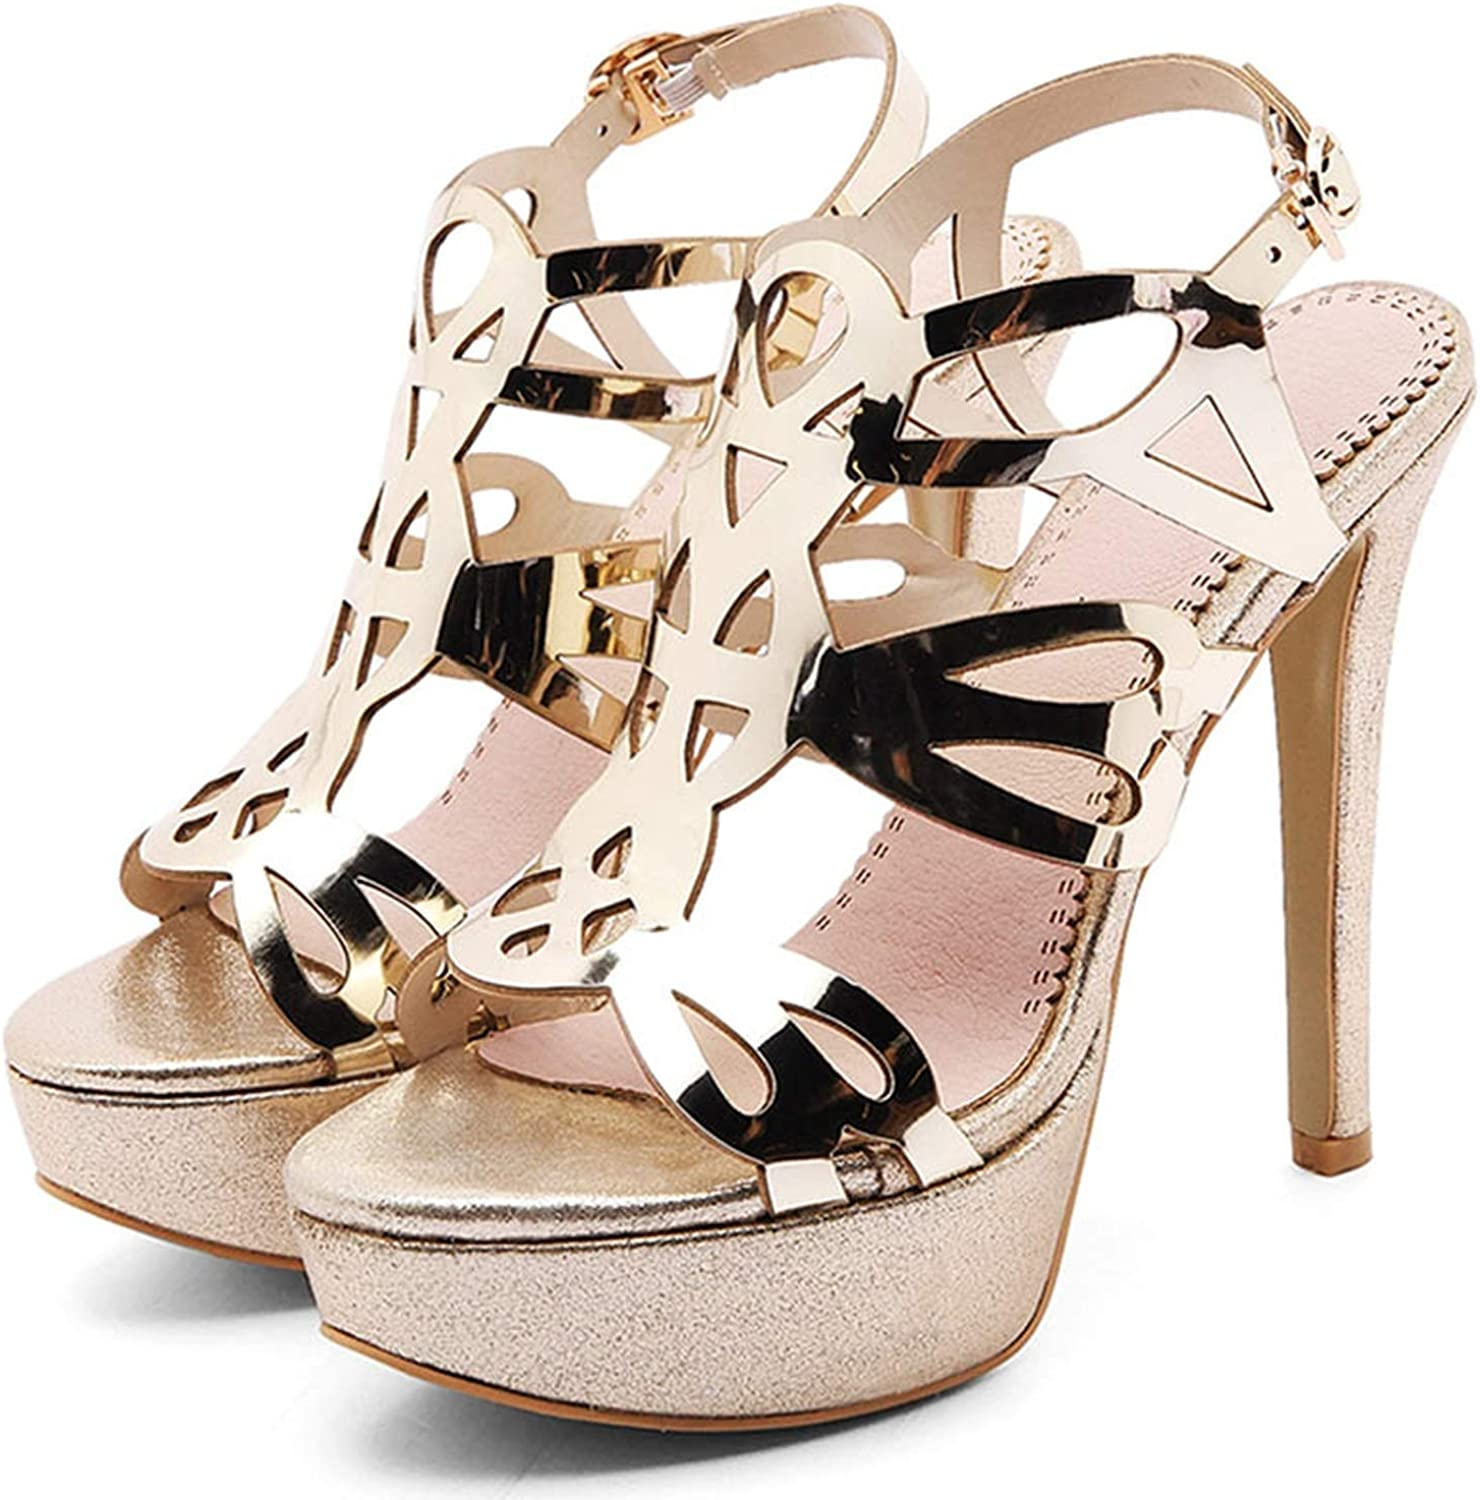 Women Cut Out Open Toe Party Sandals Ladies Sexy Platform High Heel shoes,gold,10